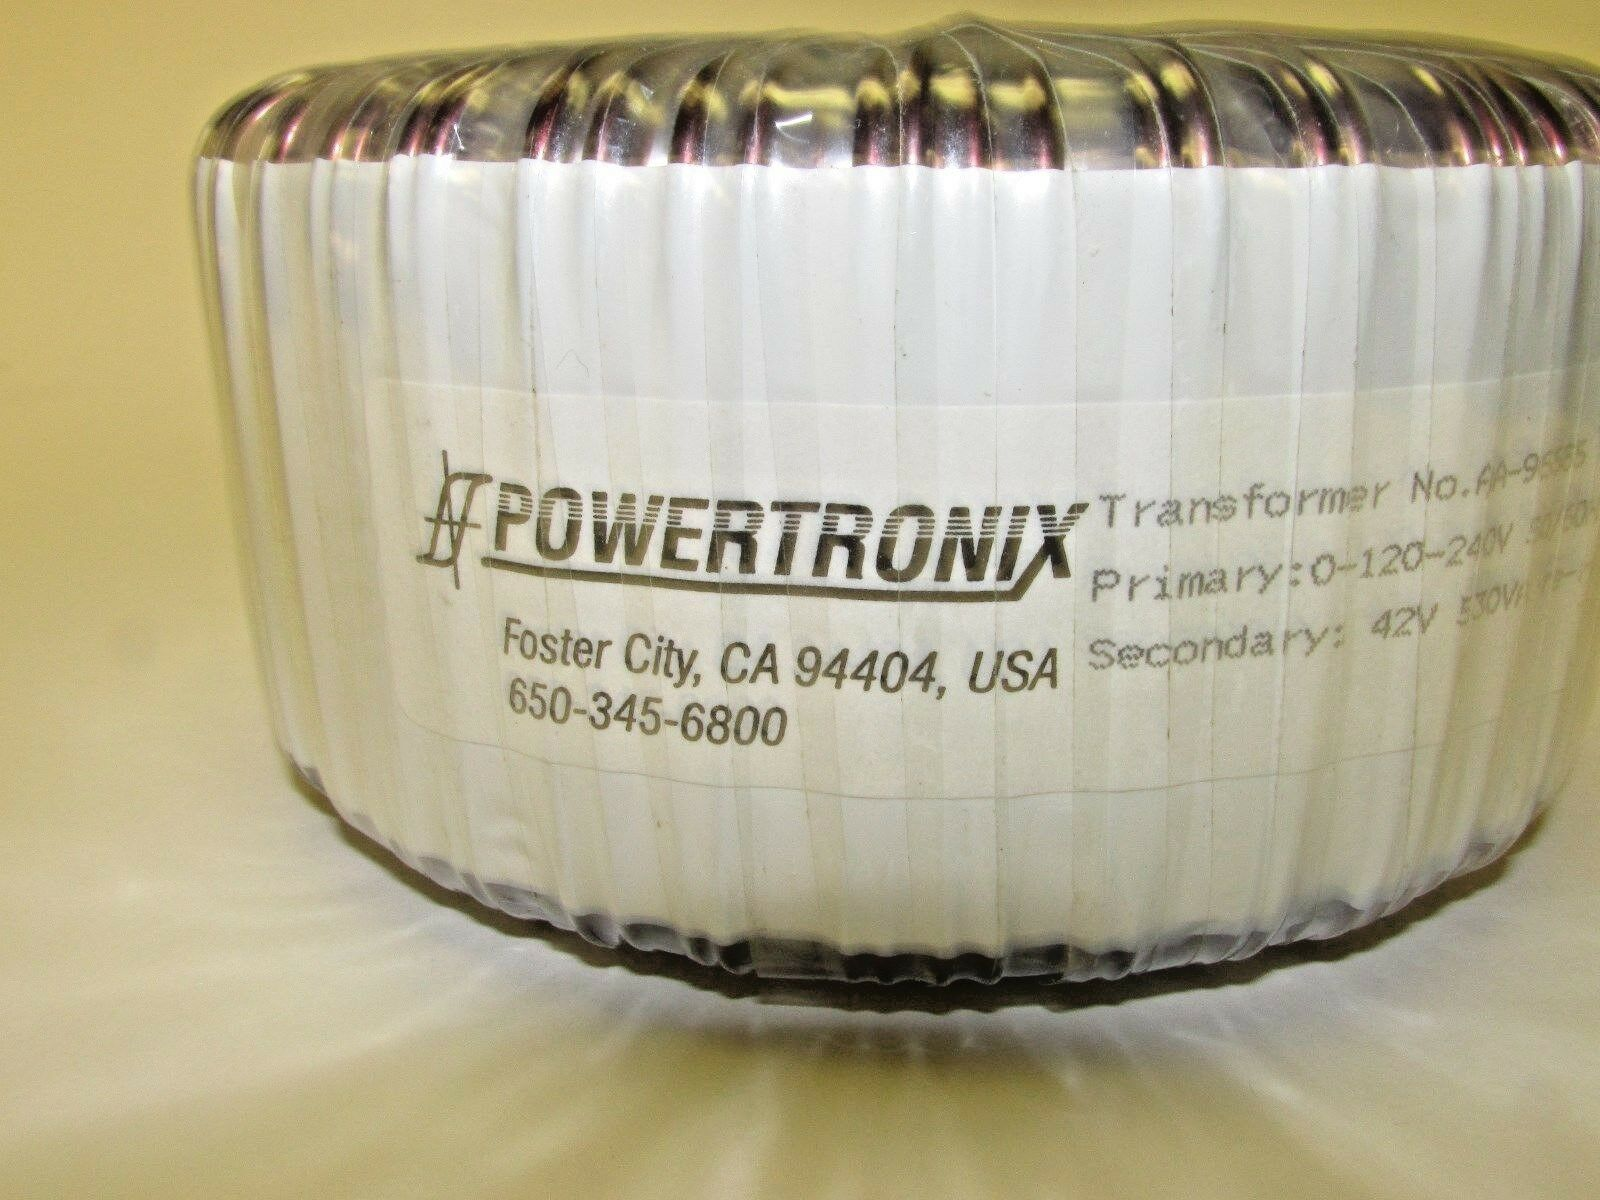 Powertronix Model Aa 96585 Heavy Duty 42v 530va Toroidal Power Powertronixinductor1jpg Norton Secured Powered By Verisign